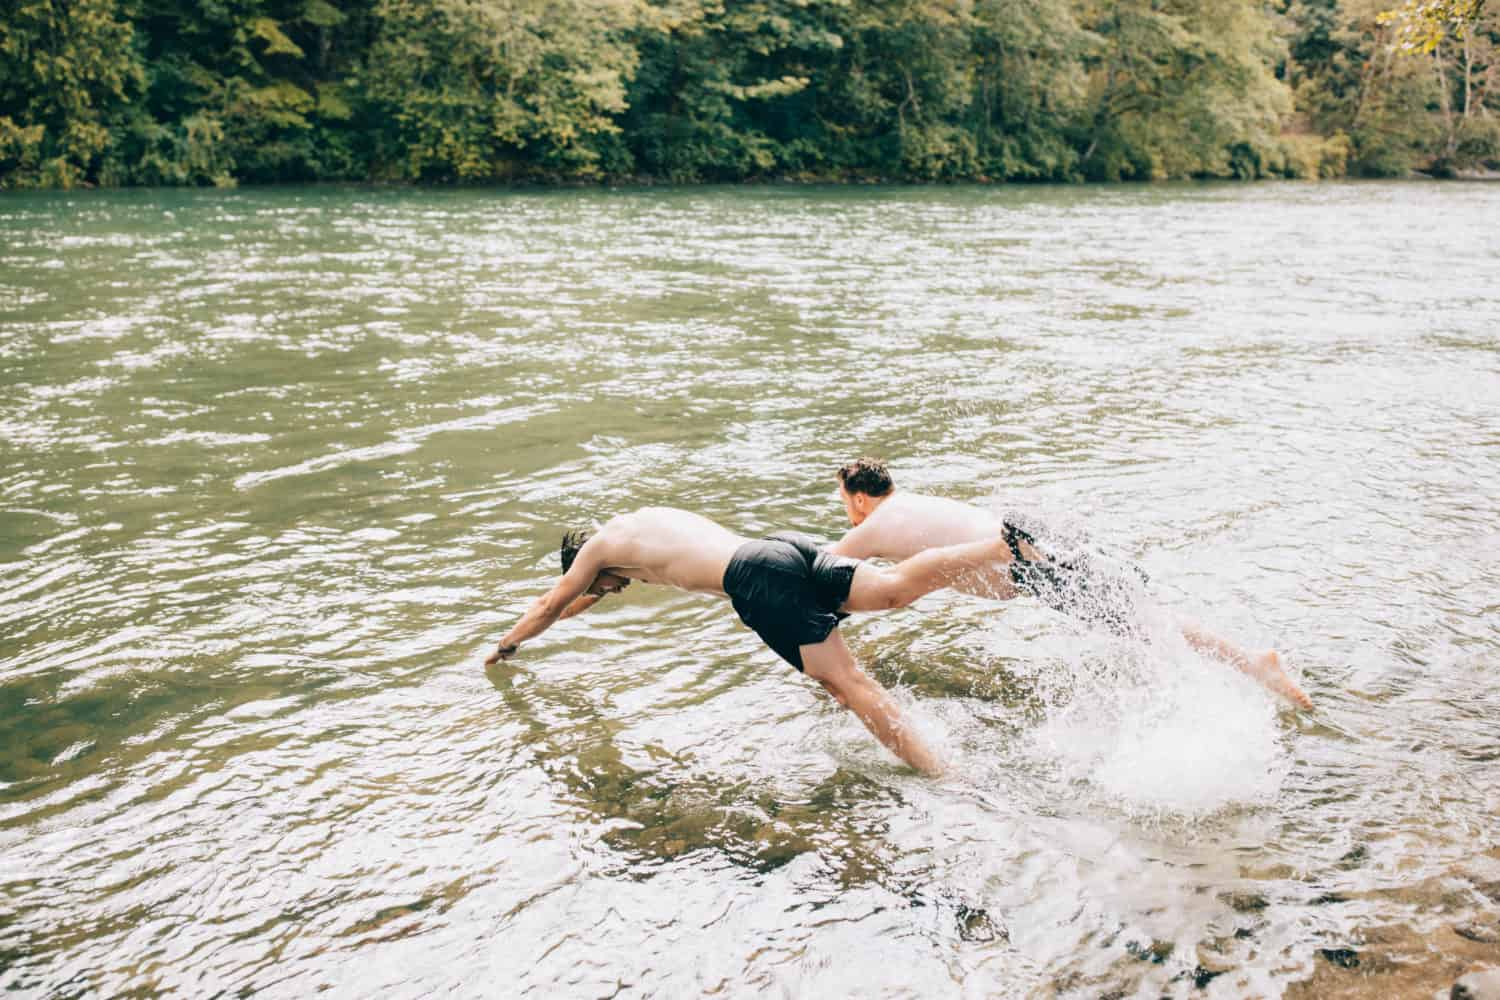 Jumping into the South Fork River